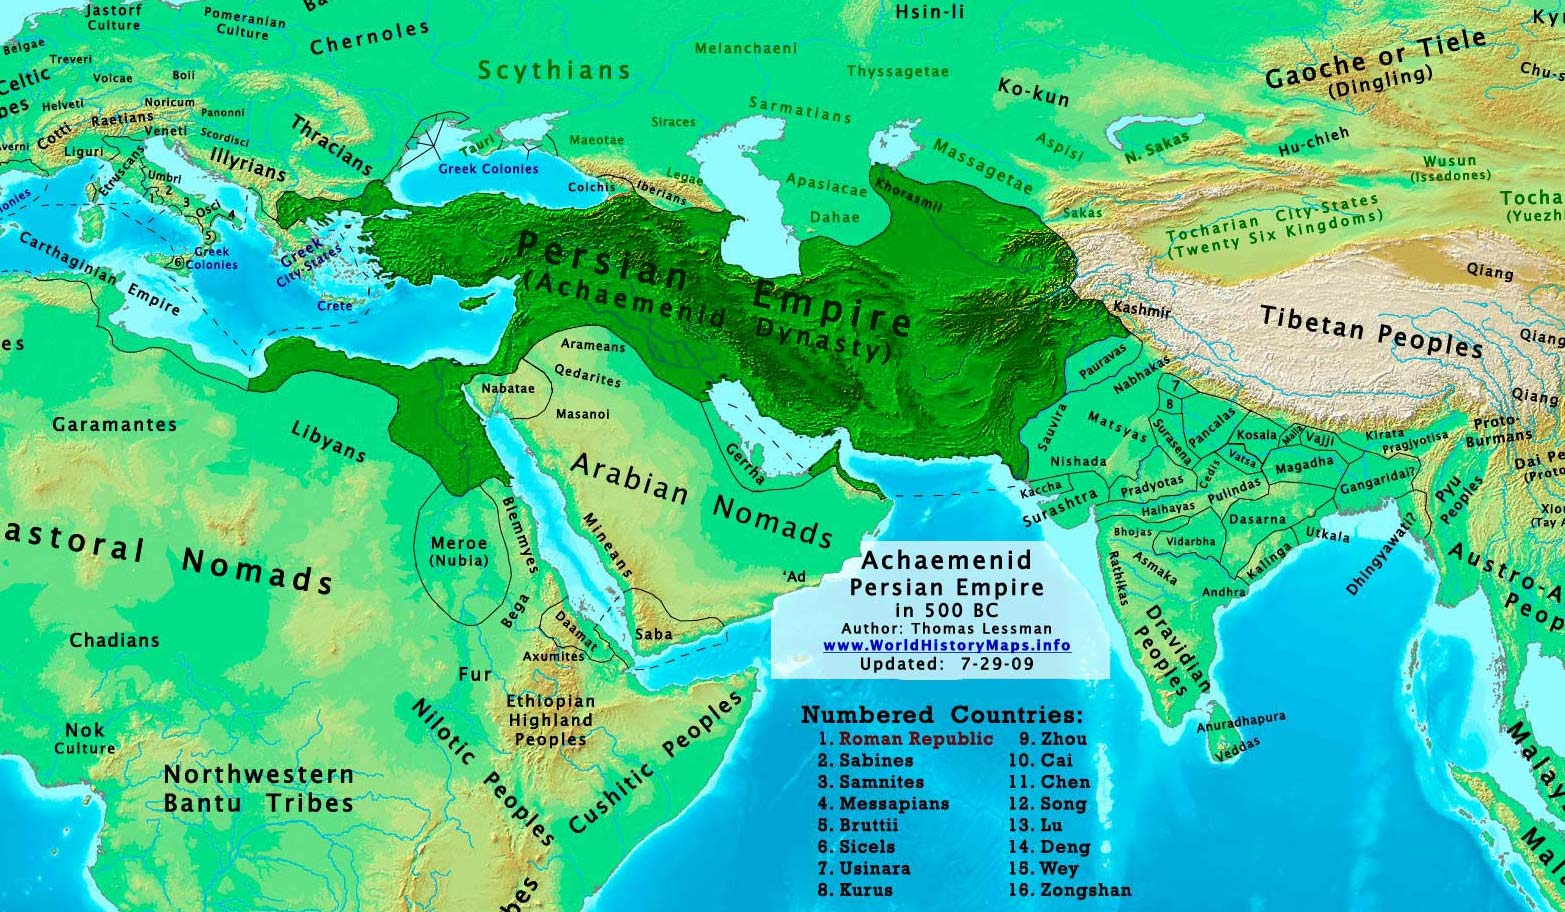 Shamsibala And The Historical Shambhala Kingdom Okar Research - Central asia political map